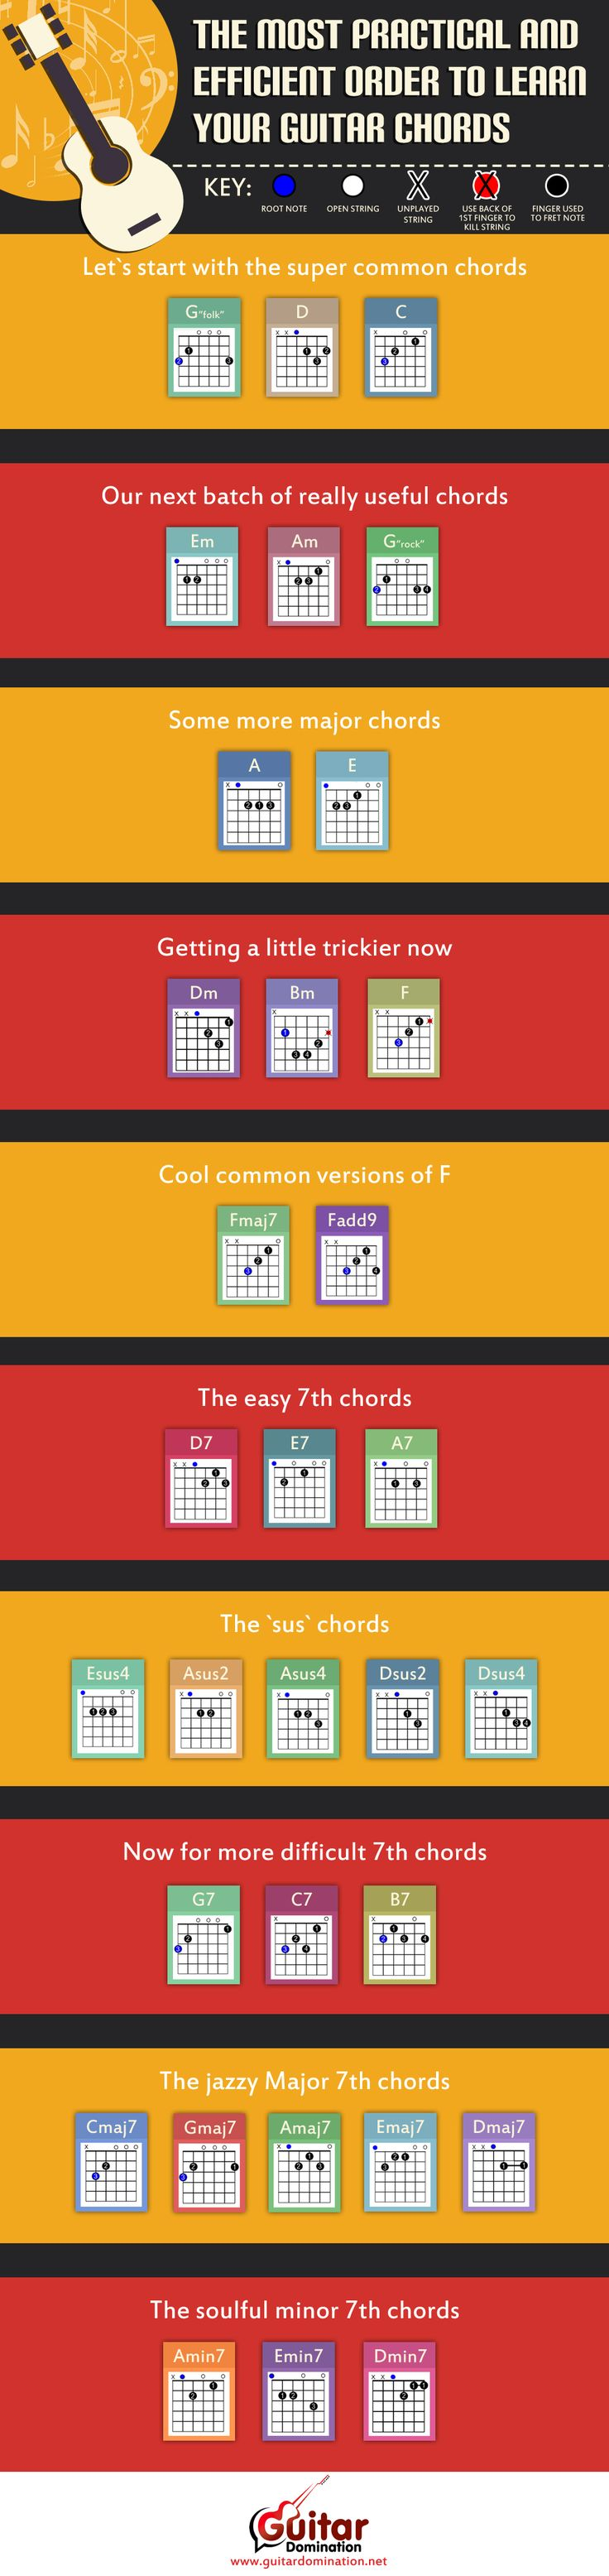 761 Best Music Images On Pinterest Guitar Chords Lessons Diagram Furthermore Lap Steel Together With Electric The First Thing I Ever Favorited Every Guitarist Should Know